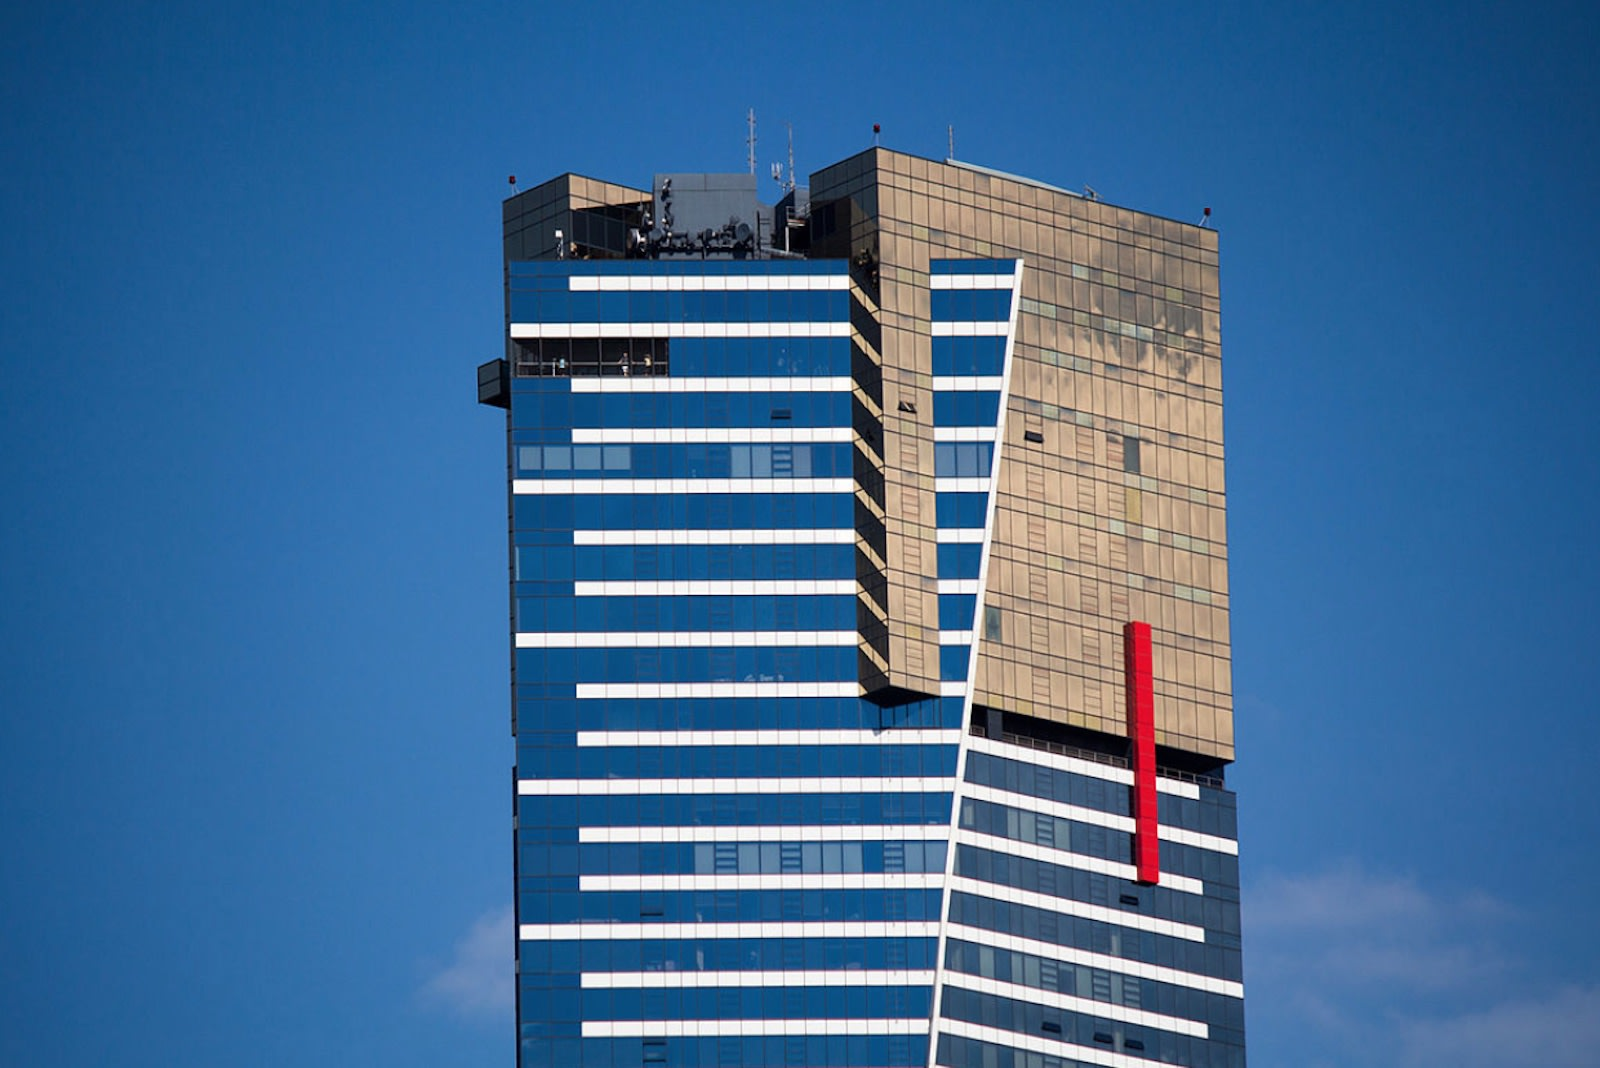 Daniel Grollo's Eureka Tower, Melbourne penthouse to be sold